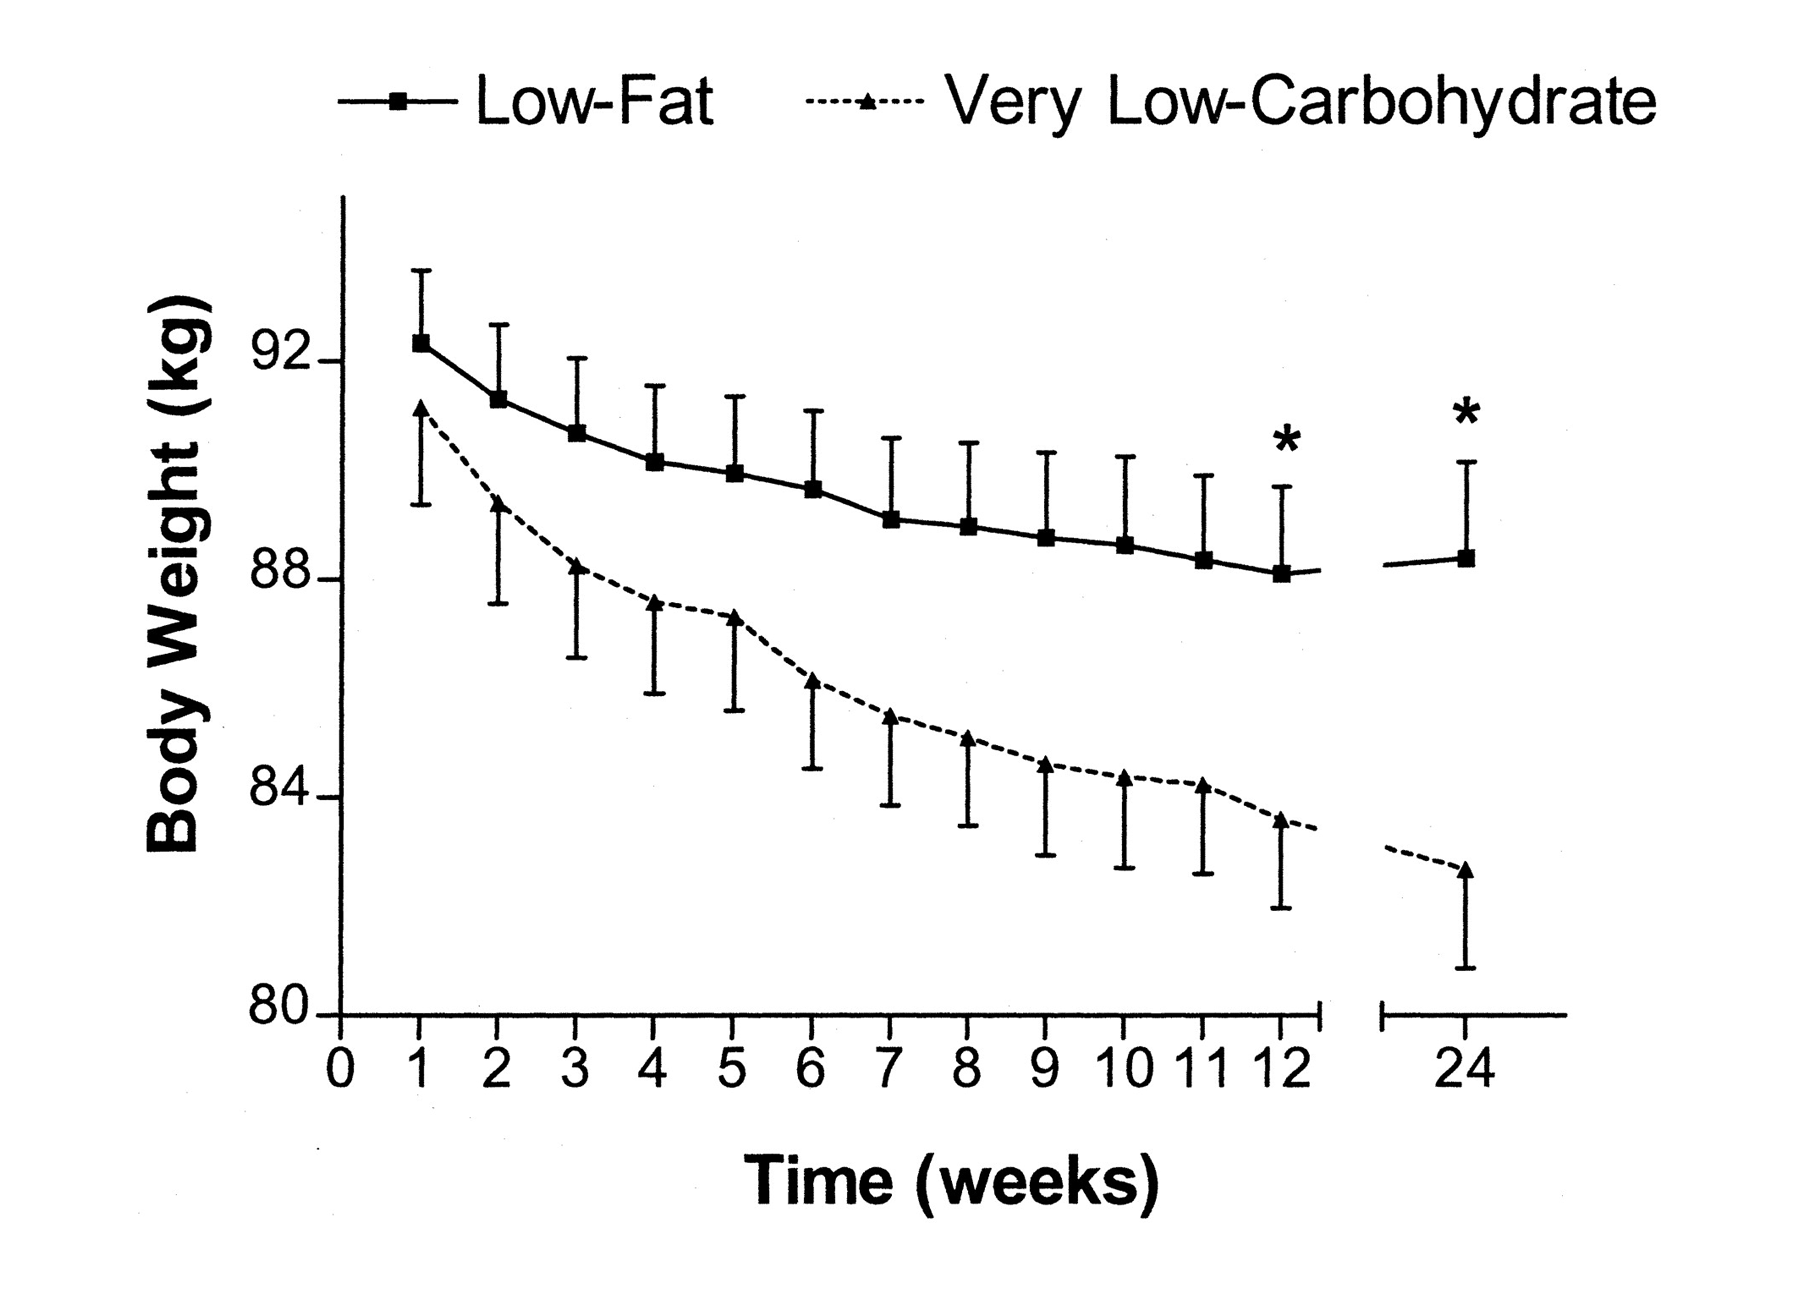 The Low Carb Group Is Eating Until Fullness While Fat Calorie Restricted And Hungry